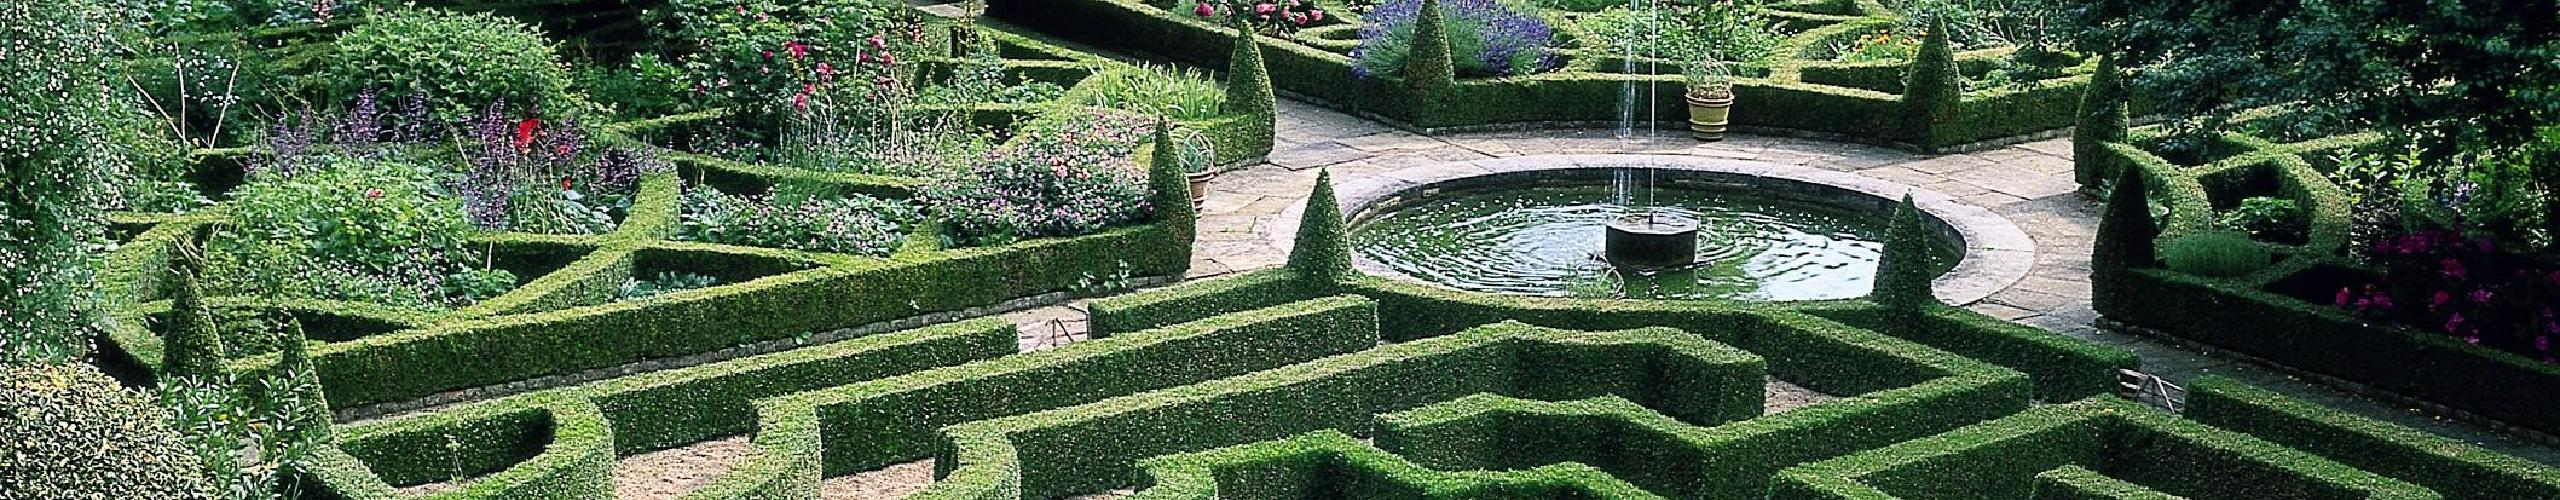 the Knot Garden at Hatfield House